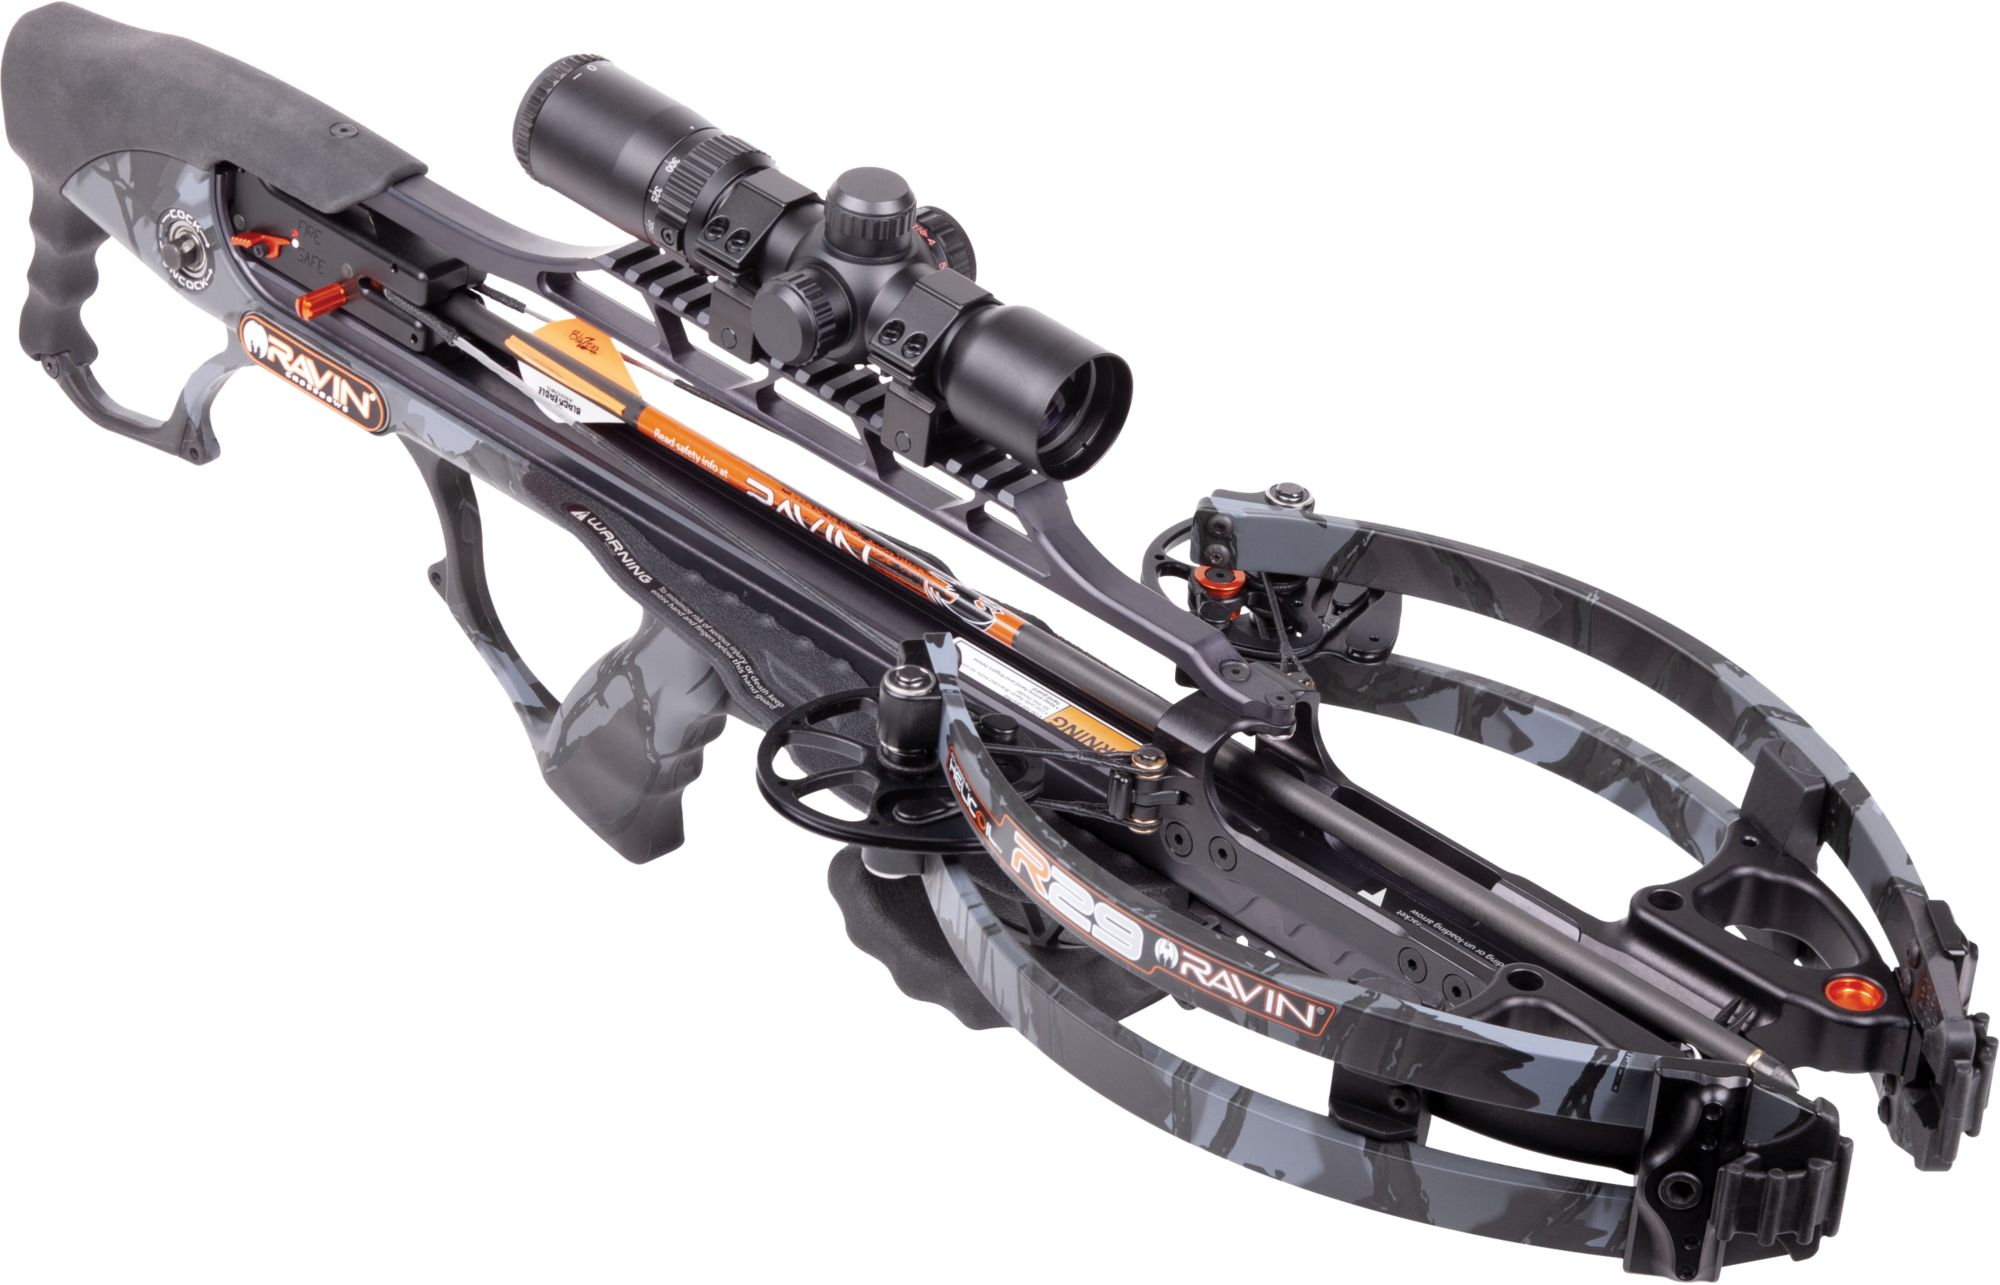 Ravin R29 Crossbow Package - 430 fps, Camo thumbnail